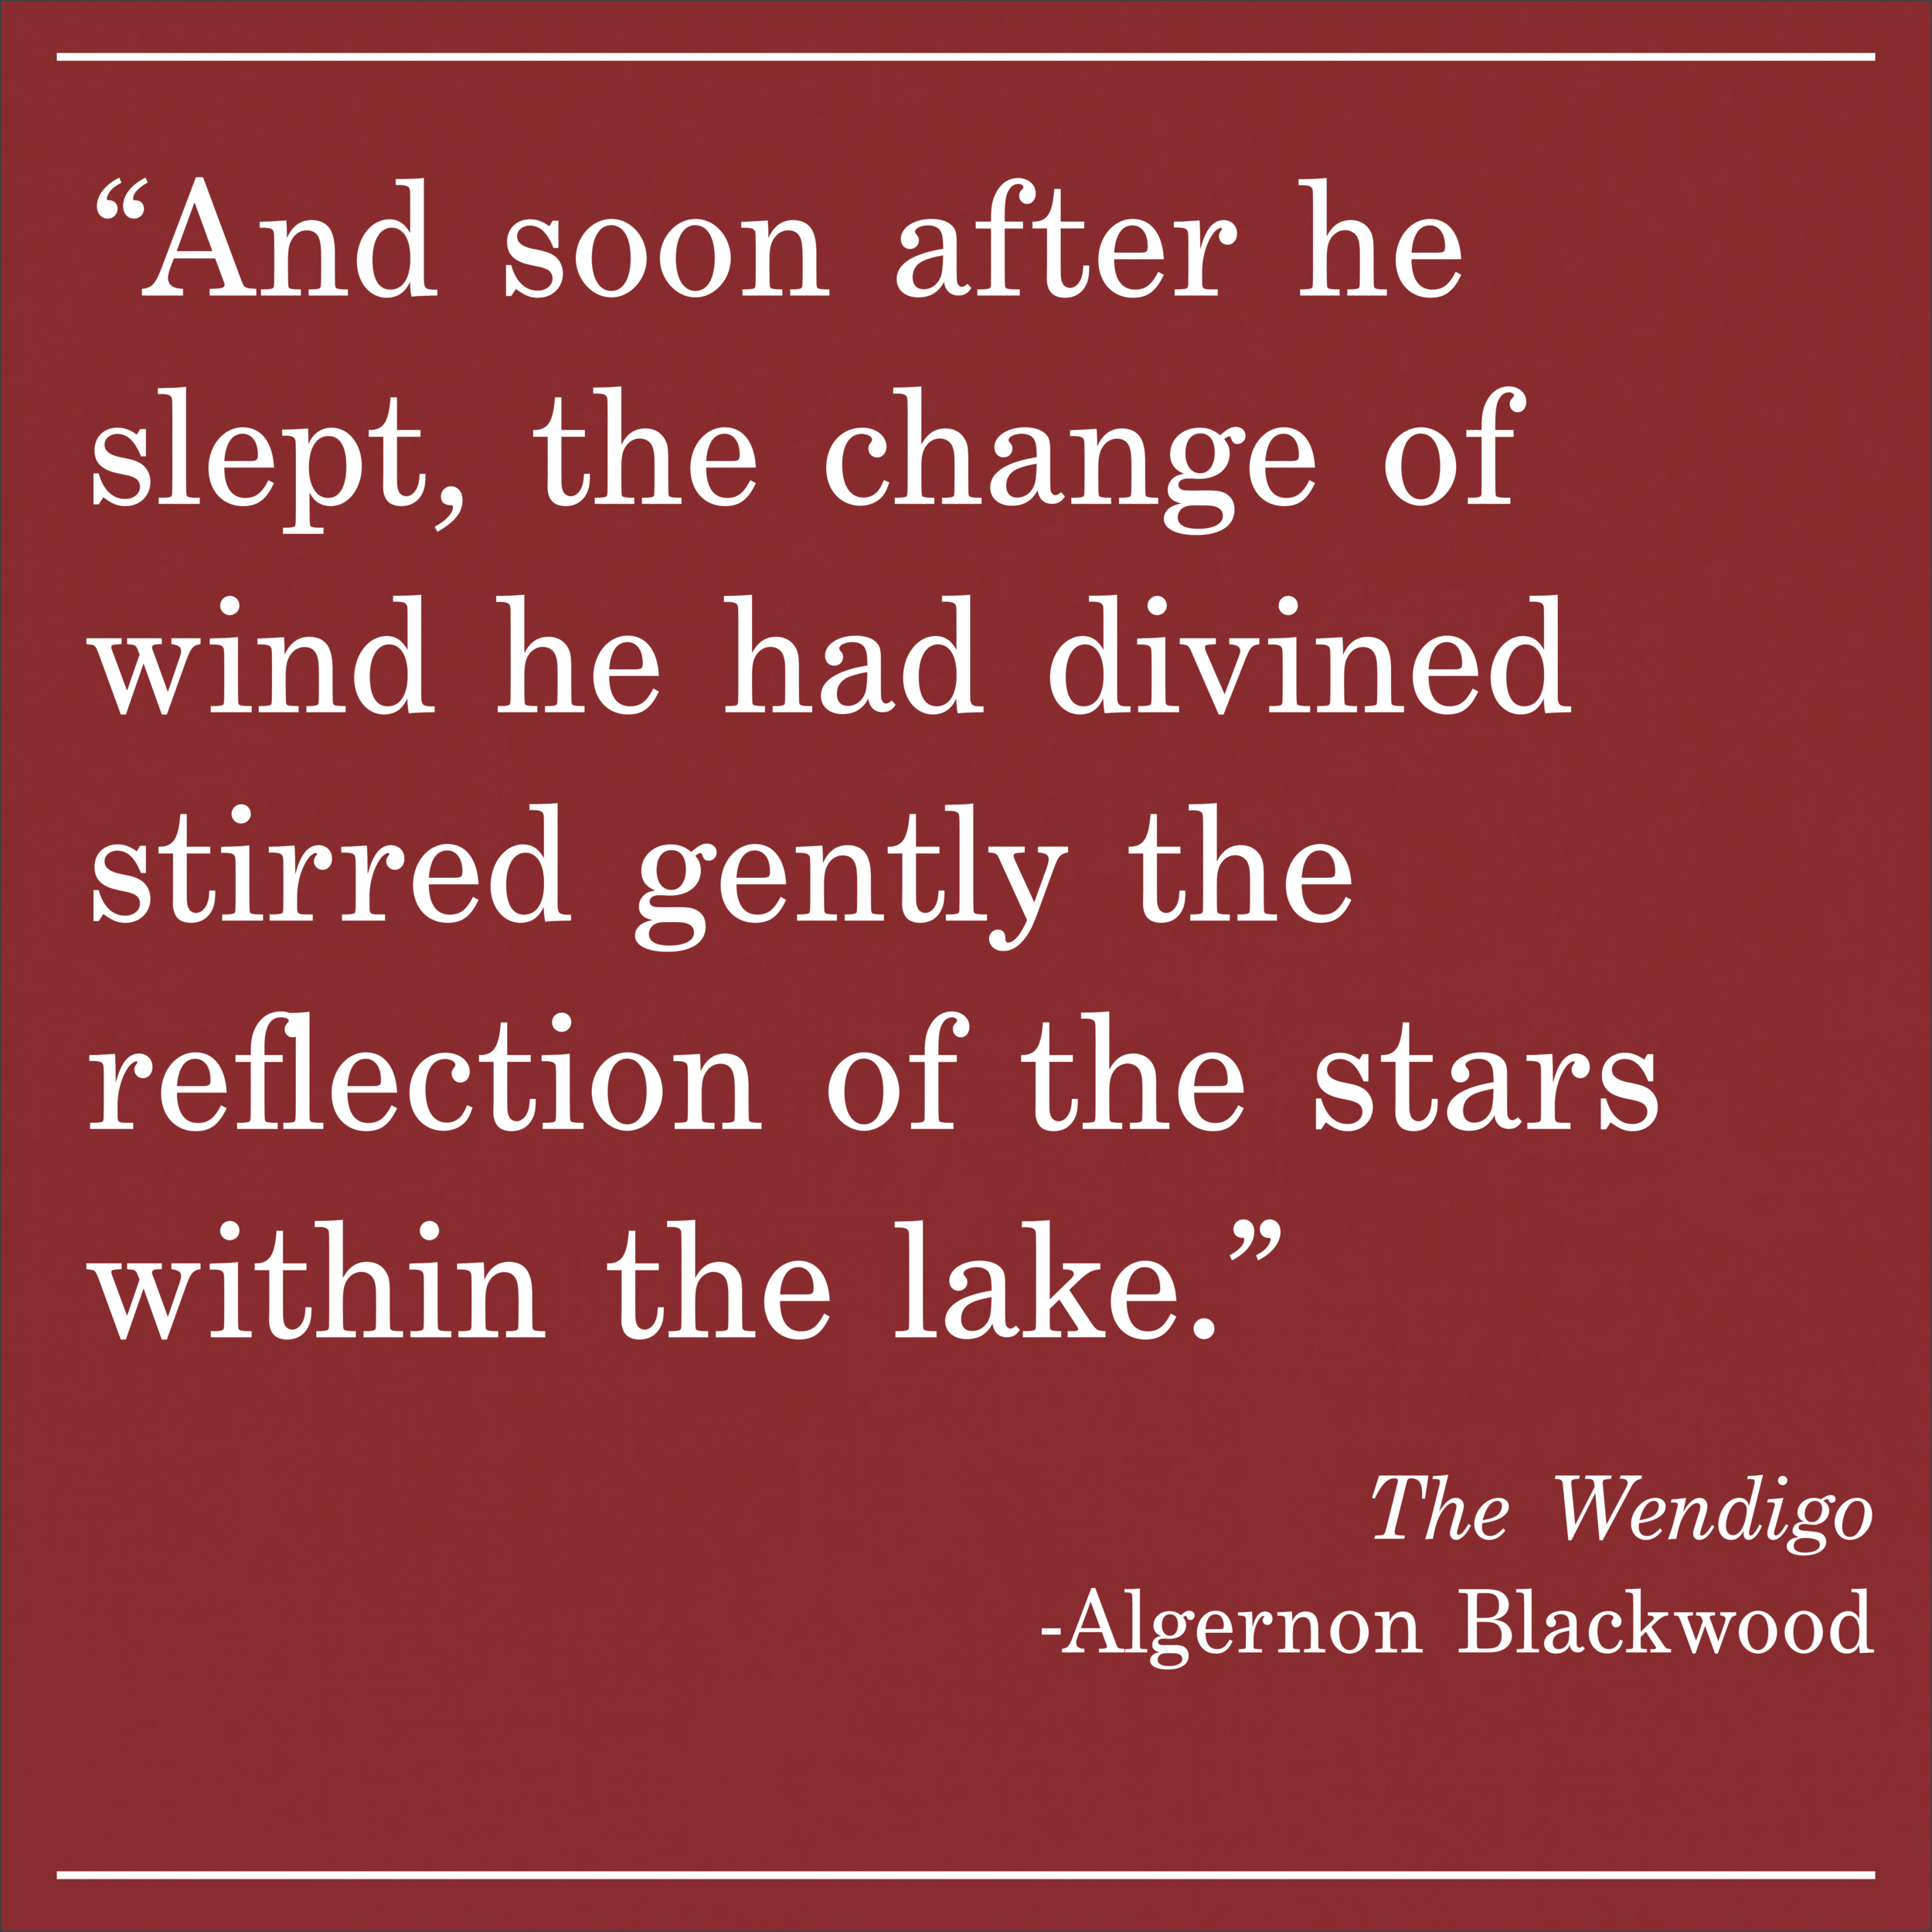 Daily Quote The Wendigo Algernon Blackwood